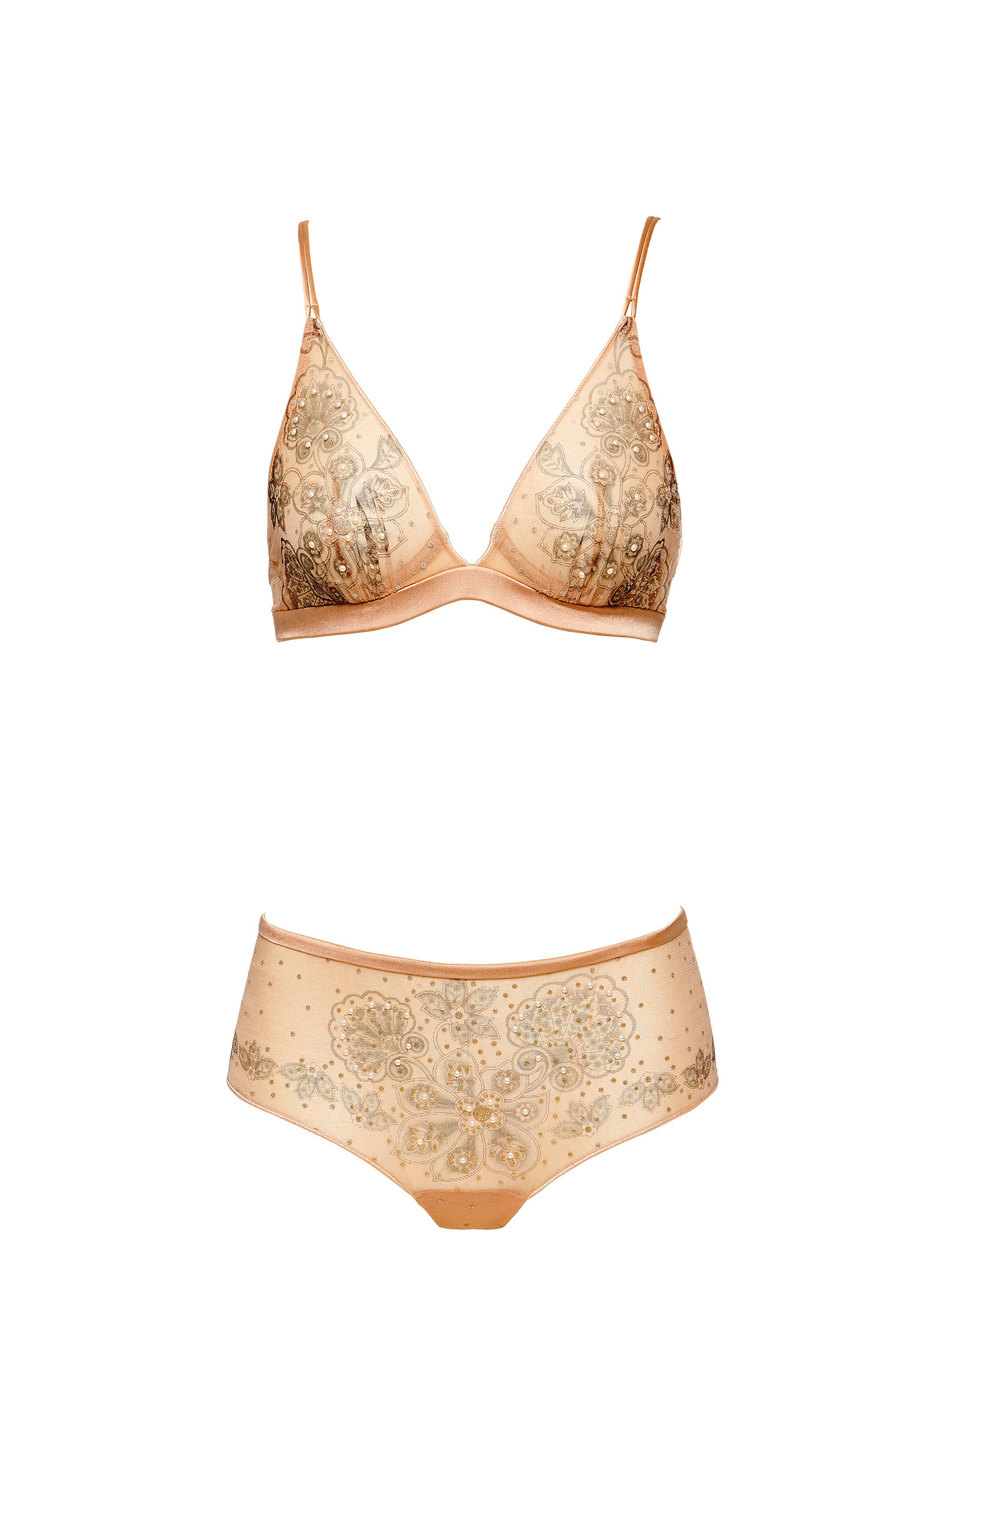 La Perla Limited Edition Bra, £276  La Perla Limited Edition Brief, £296